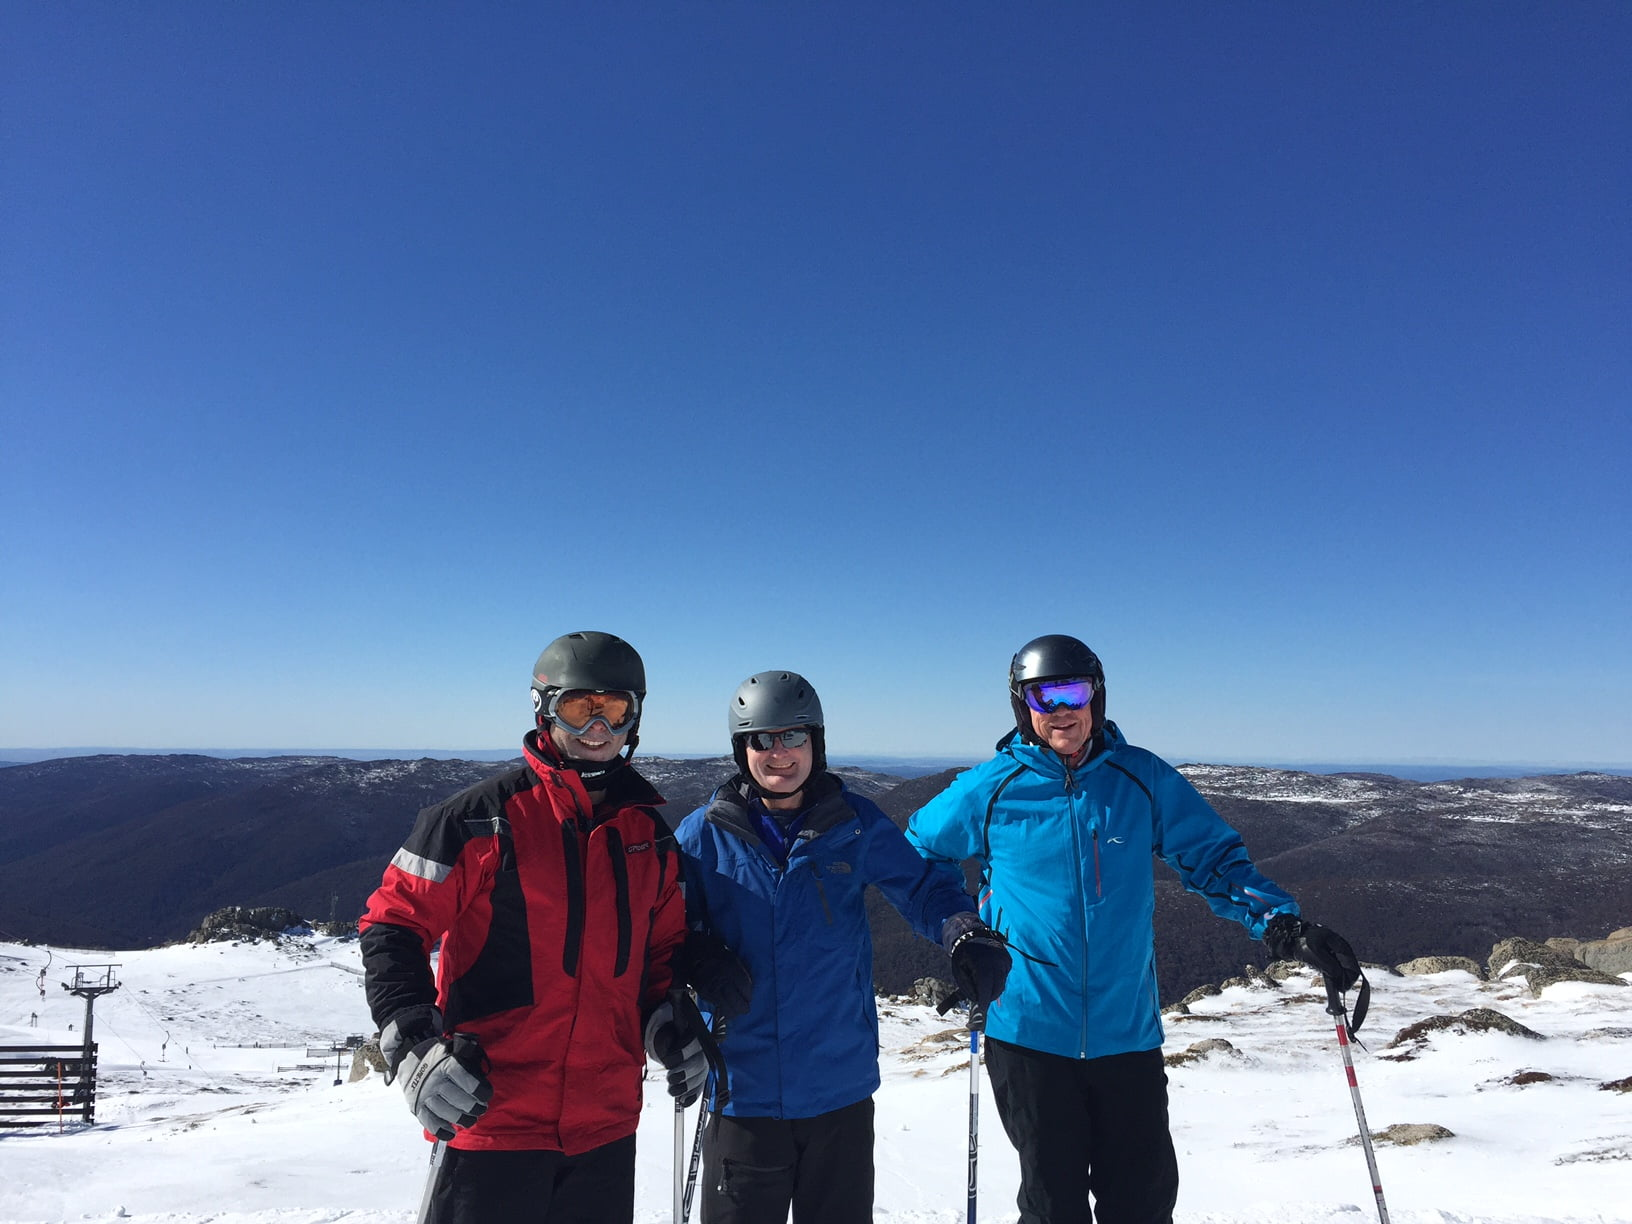 aul Rees Andrew Rewell Peter Clinch Thredbo 2016